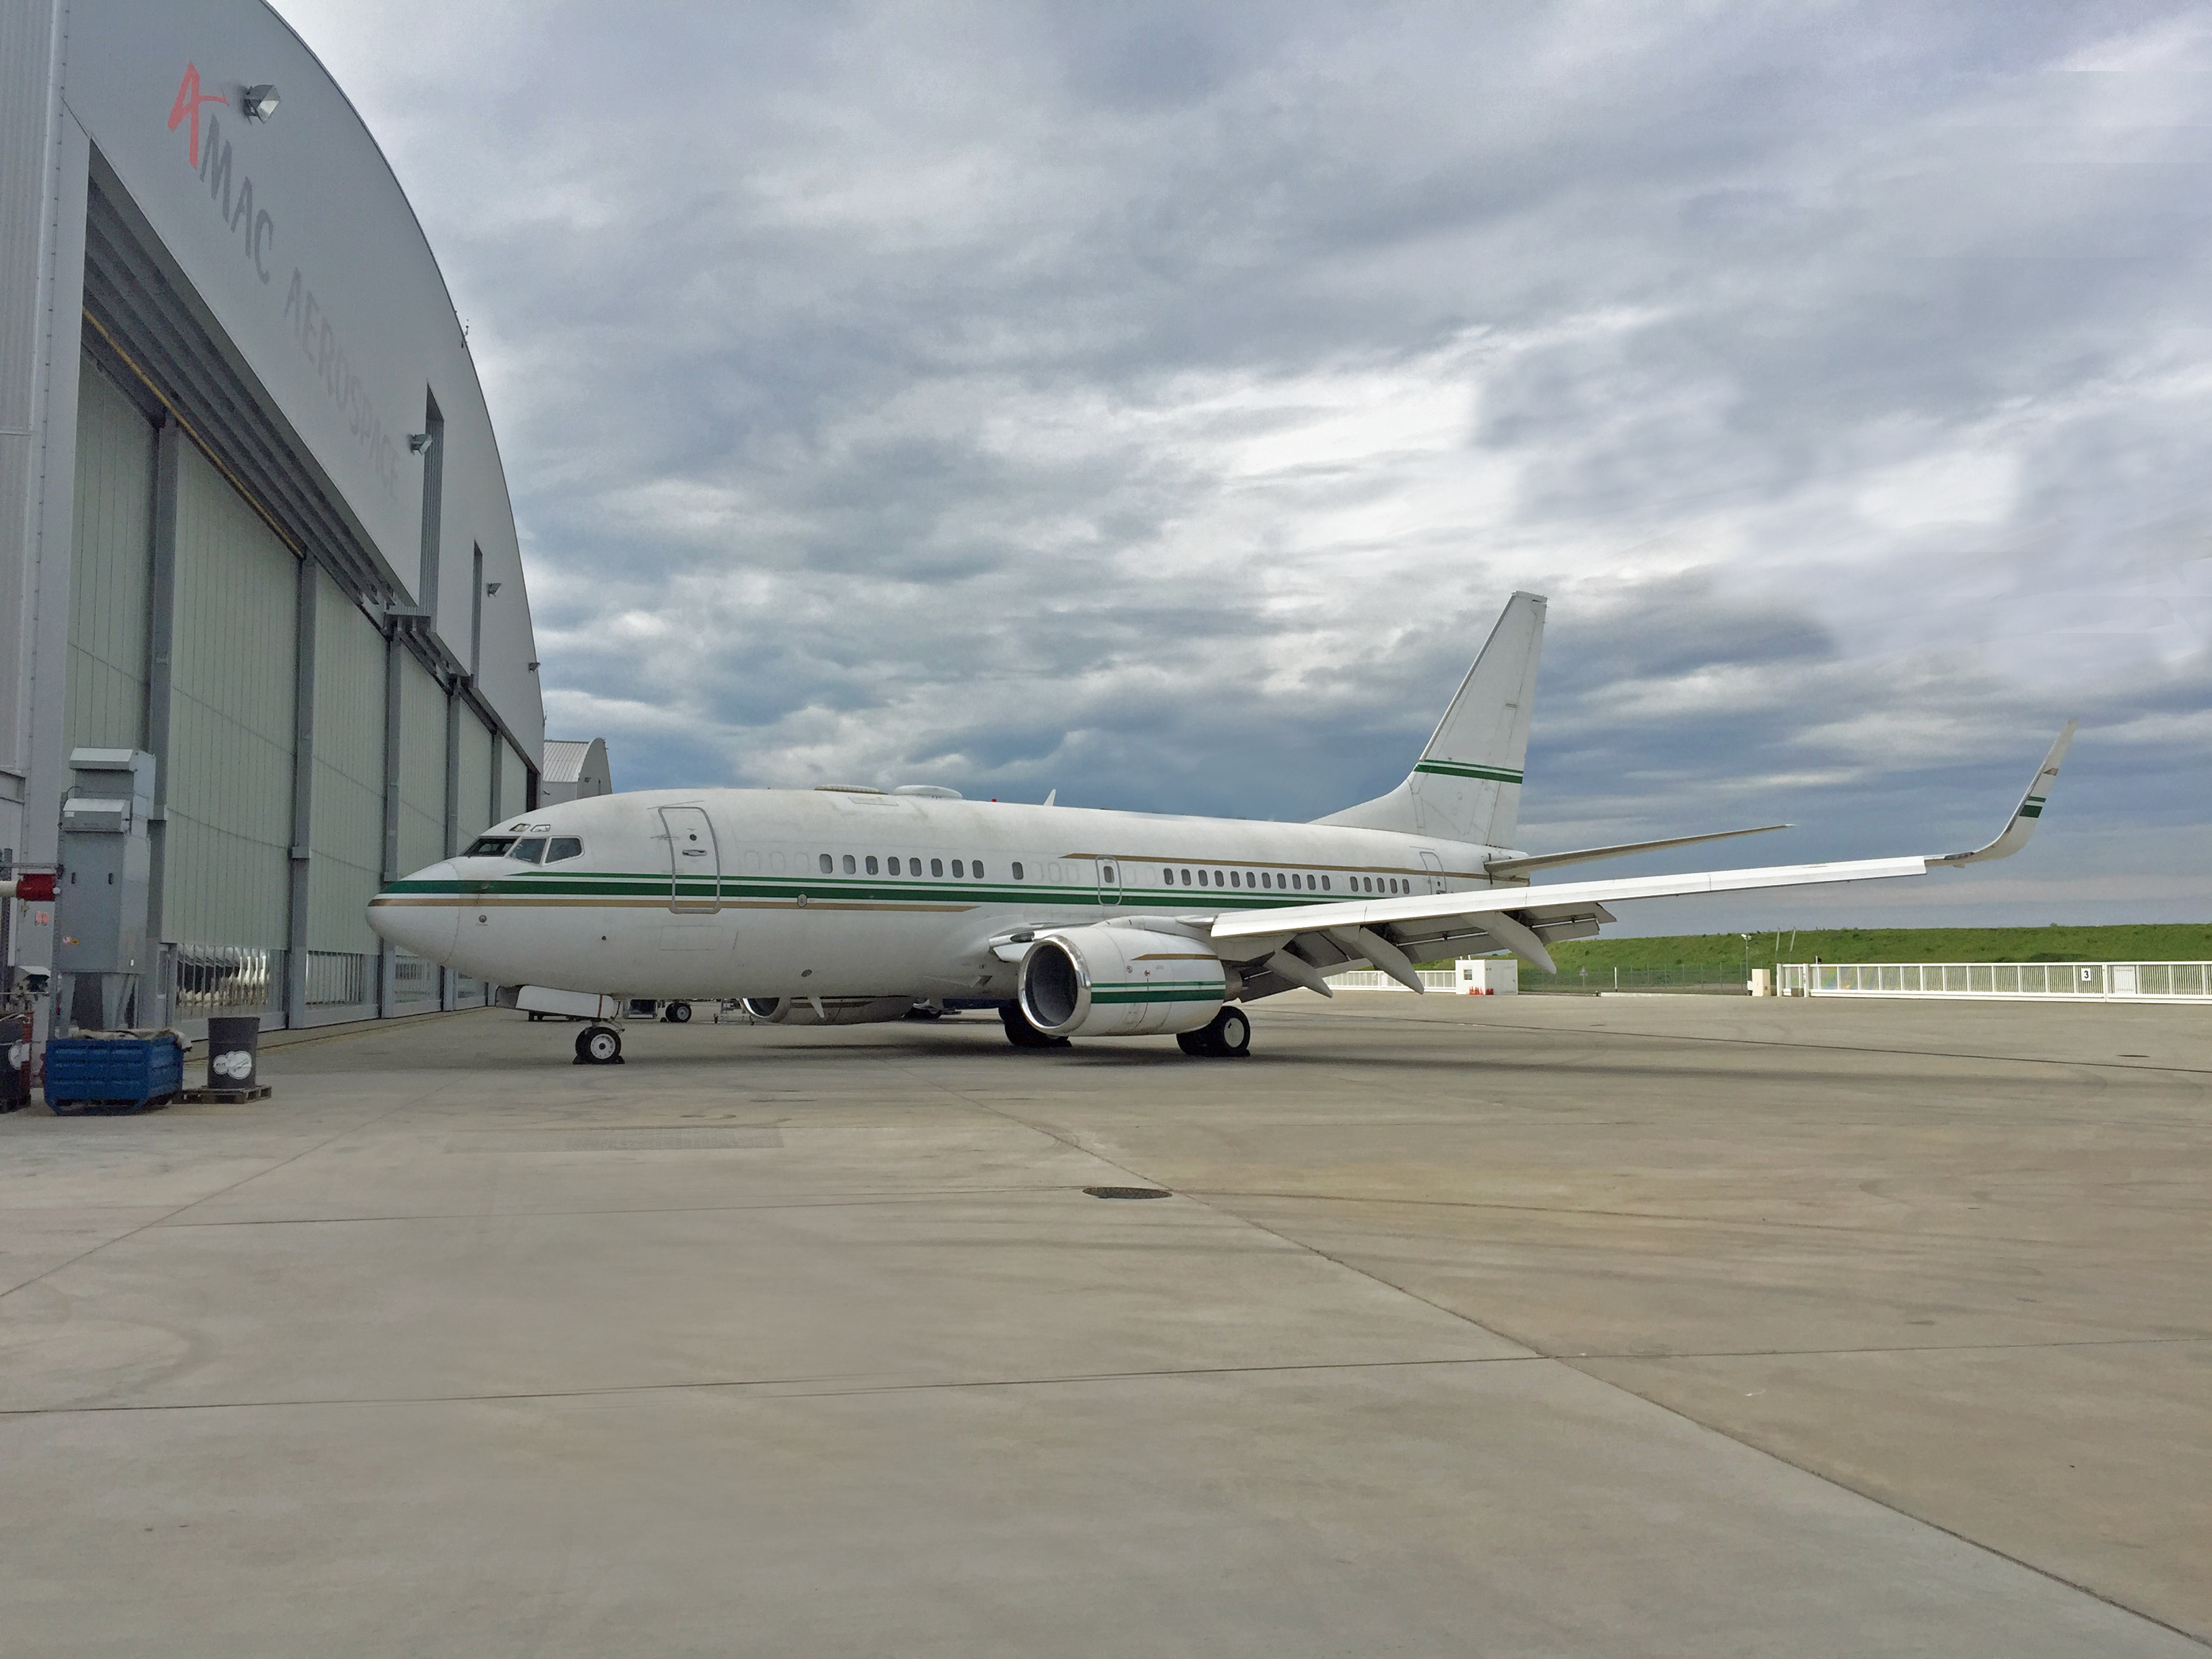 amac_2016-05-10_eap_bbj-c-check_euroairport-10-may-2016